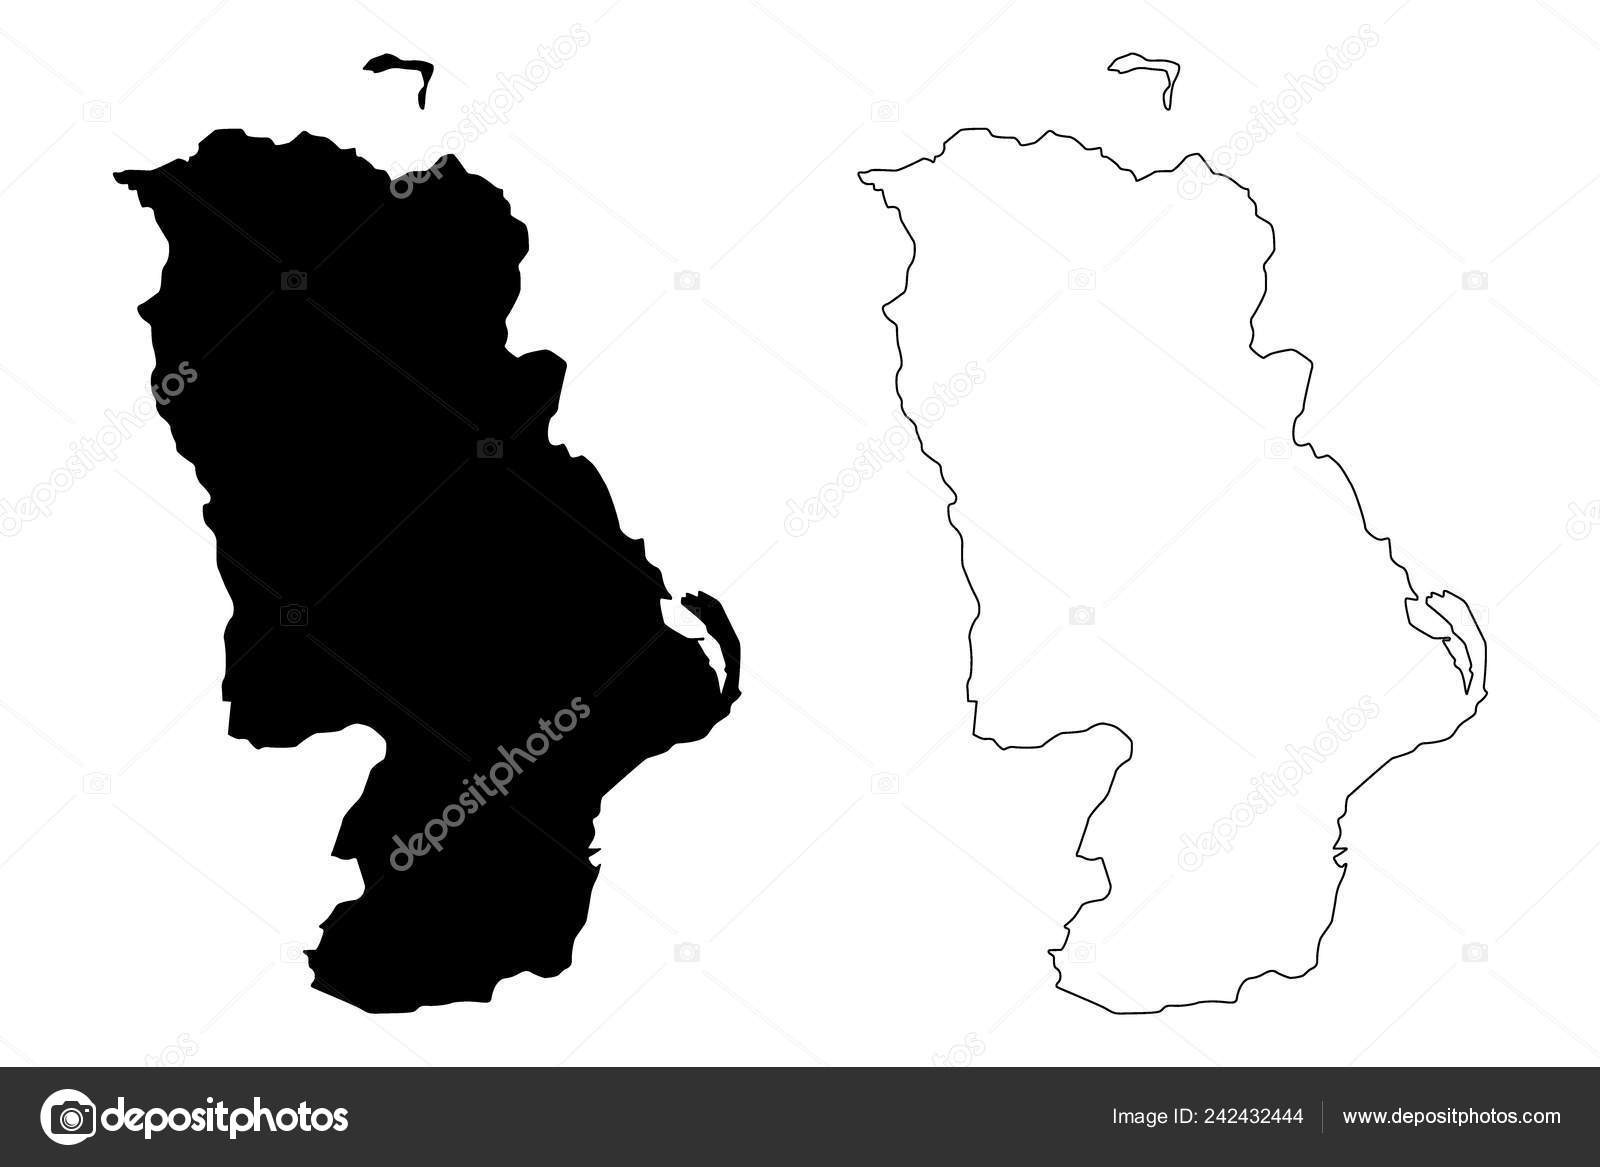 Map Of Northern Ireland Counties.County Antrim United Kingdom Northern Ireland Counties Northern